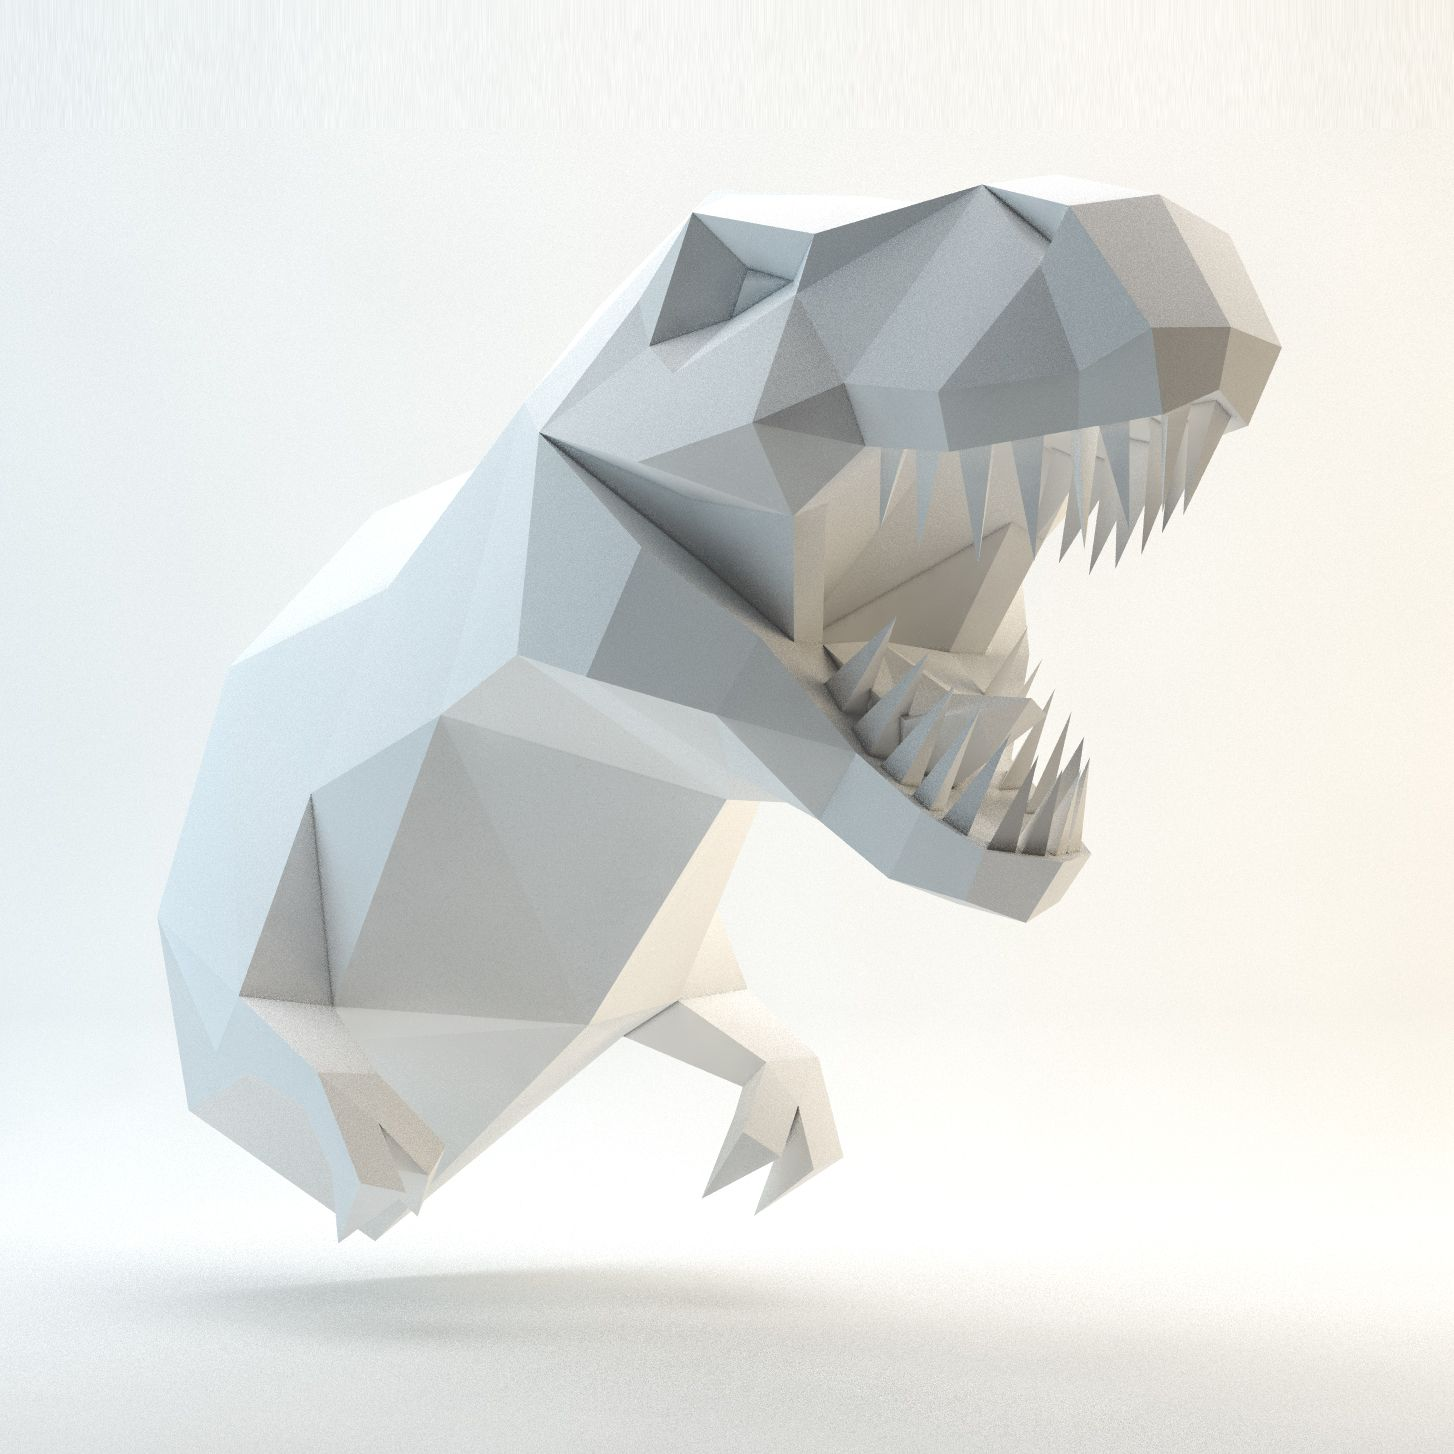 3D papercraft model. You can make your own Trex head for